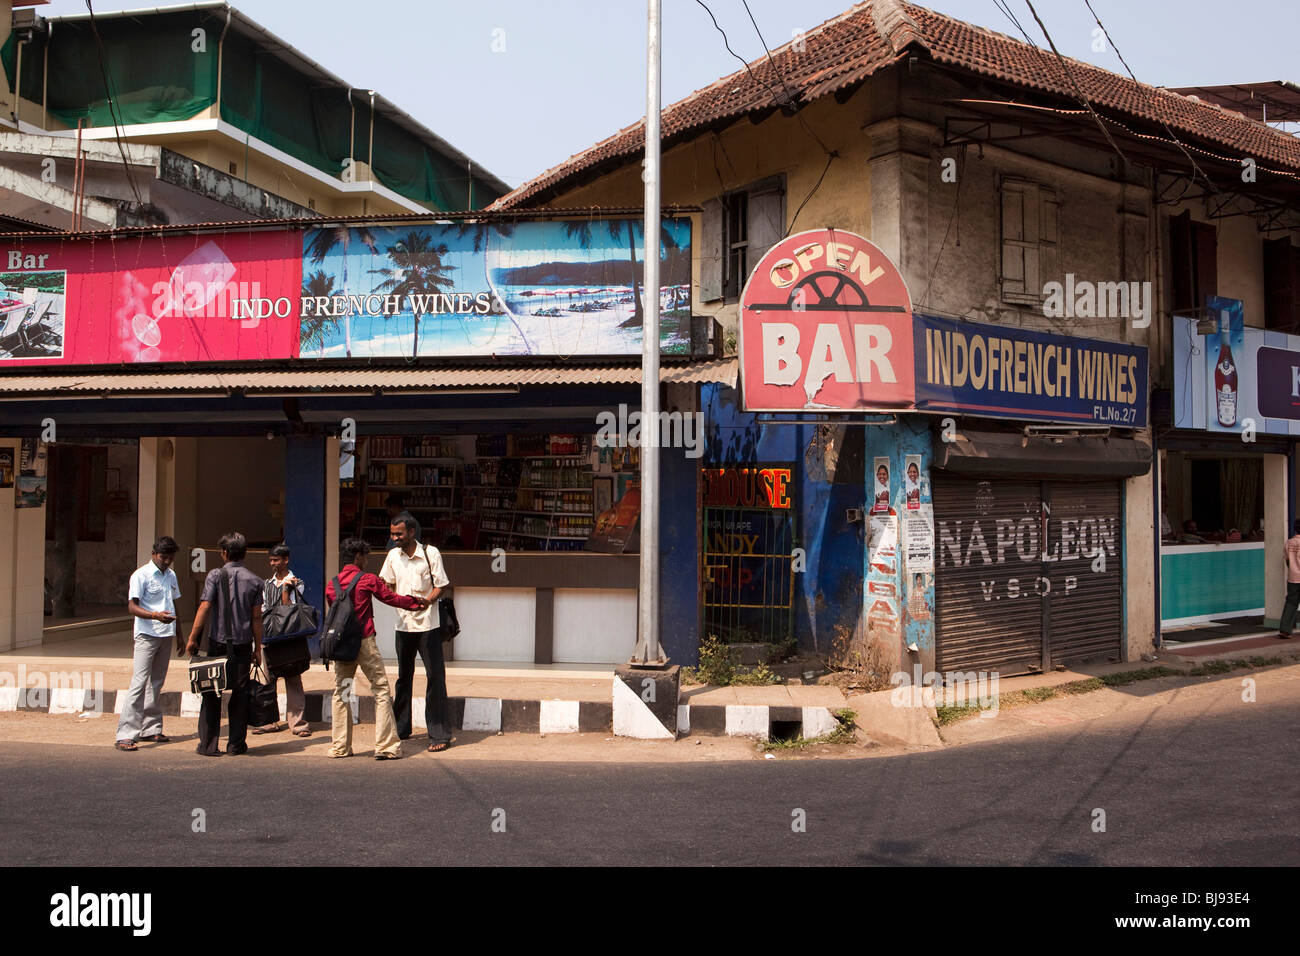 India, Kerala, Mahe (Pondicherry) Union Territory, cheap alcohol sales, men outside Indo French Wines Shop and Bar - Stock Image